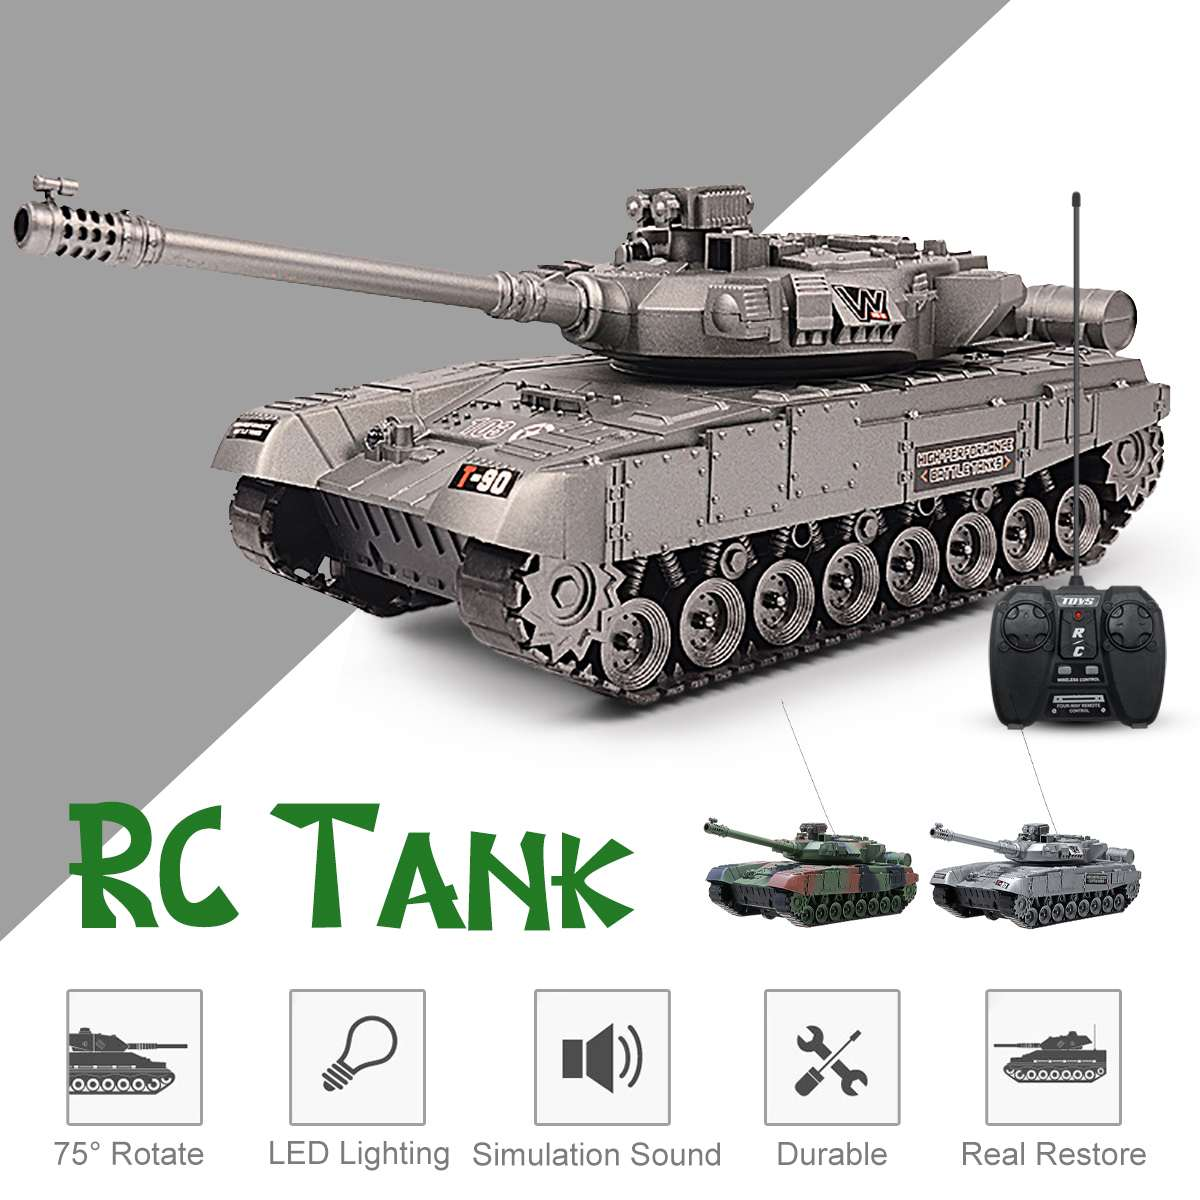 Super RC tank RC car  RC truck charger battle launch tracked remote control vehicle Hobby boy toys for kids children gifts